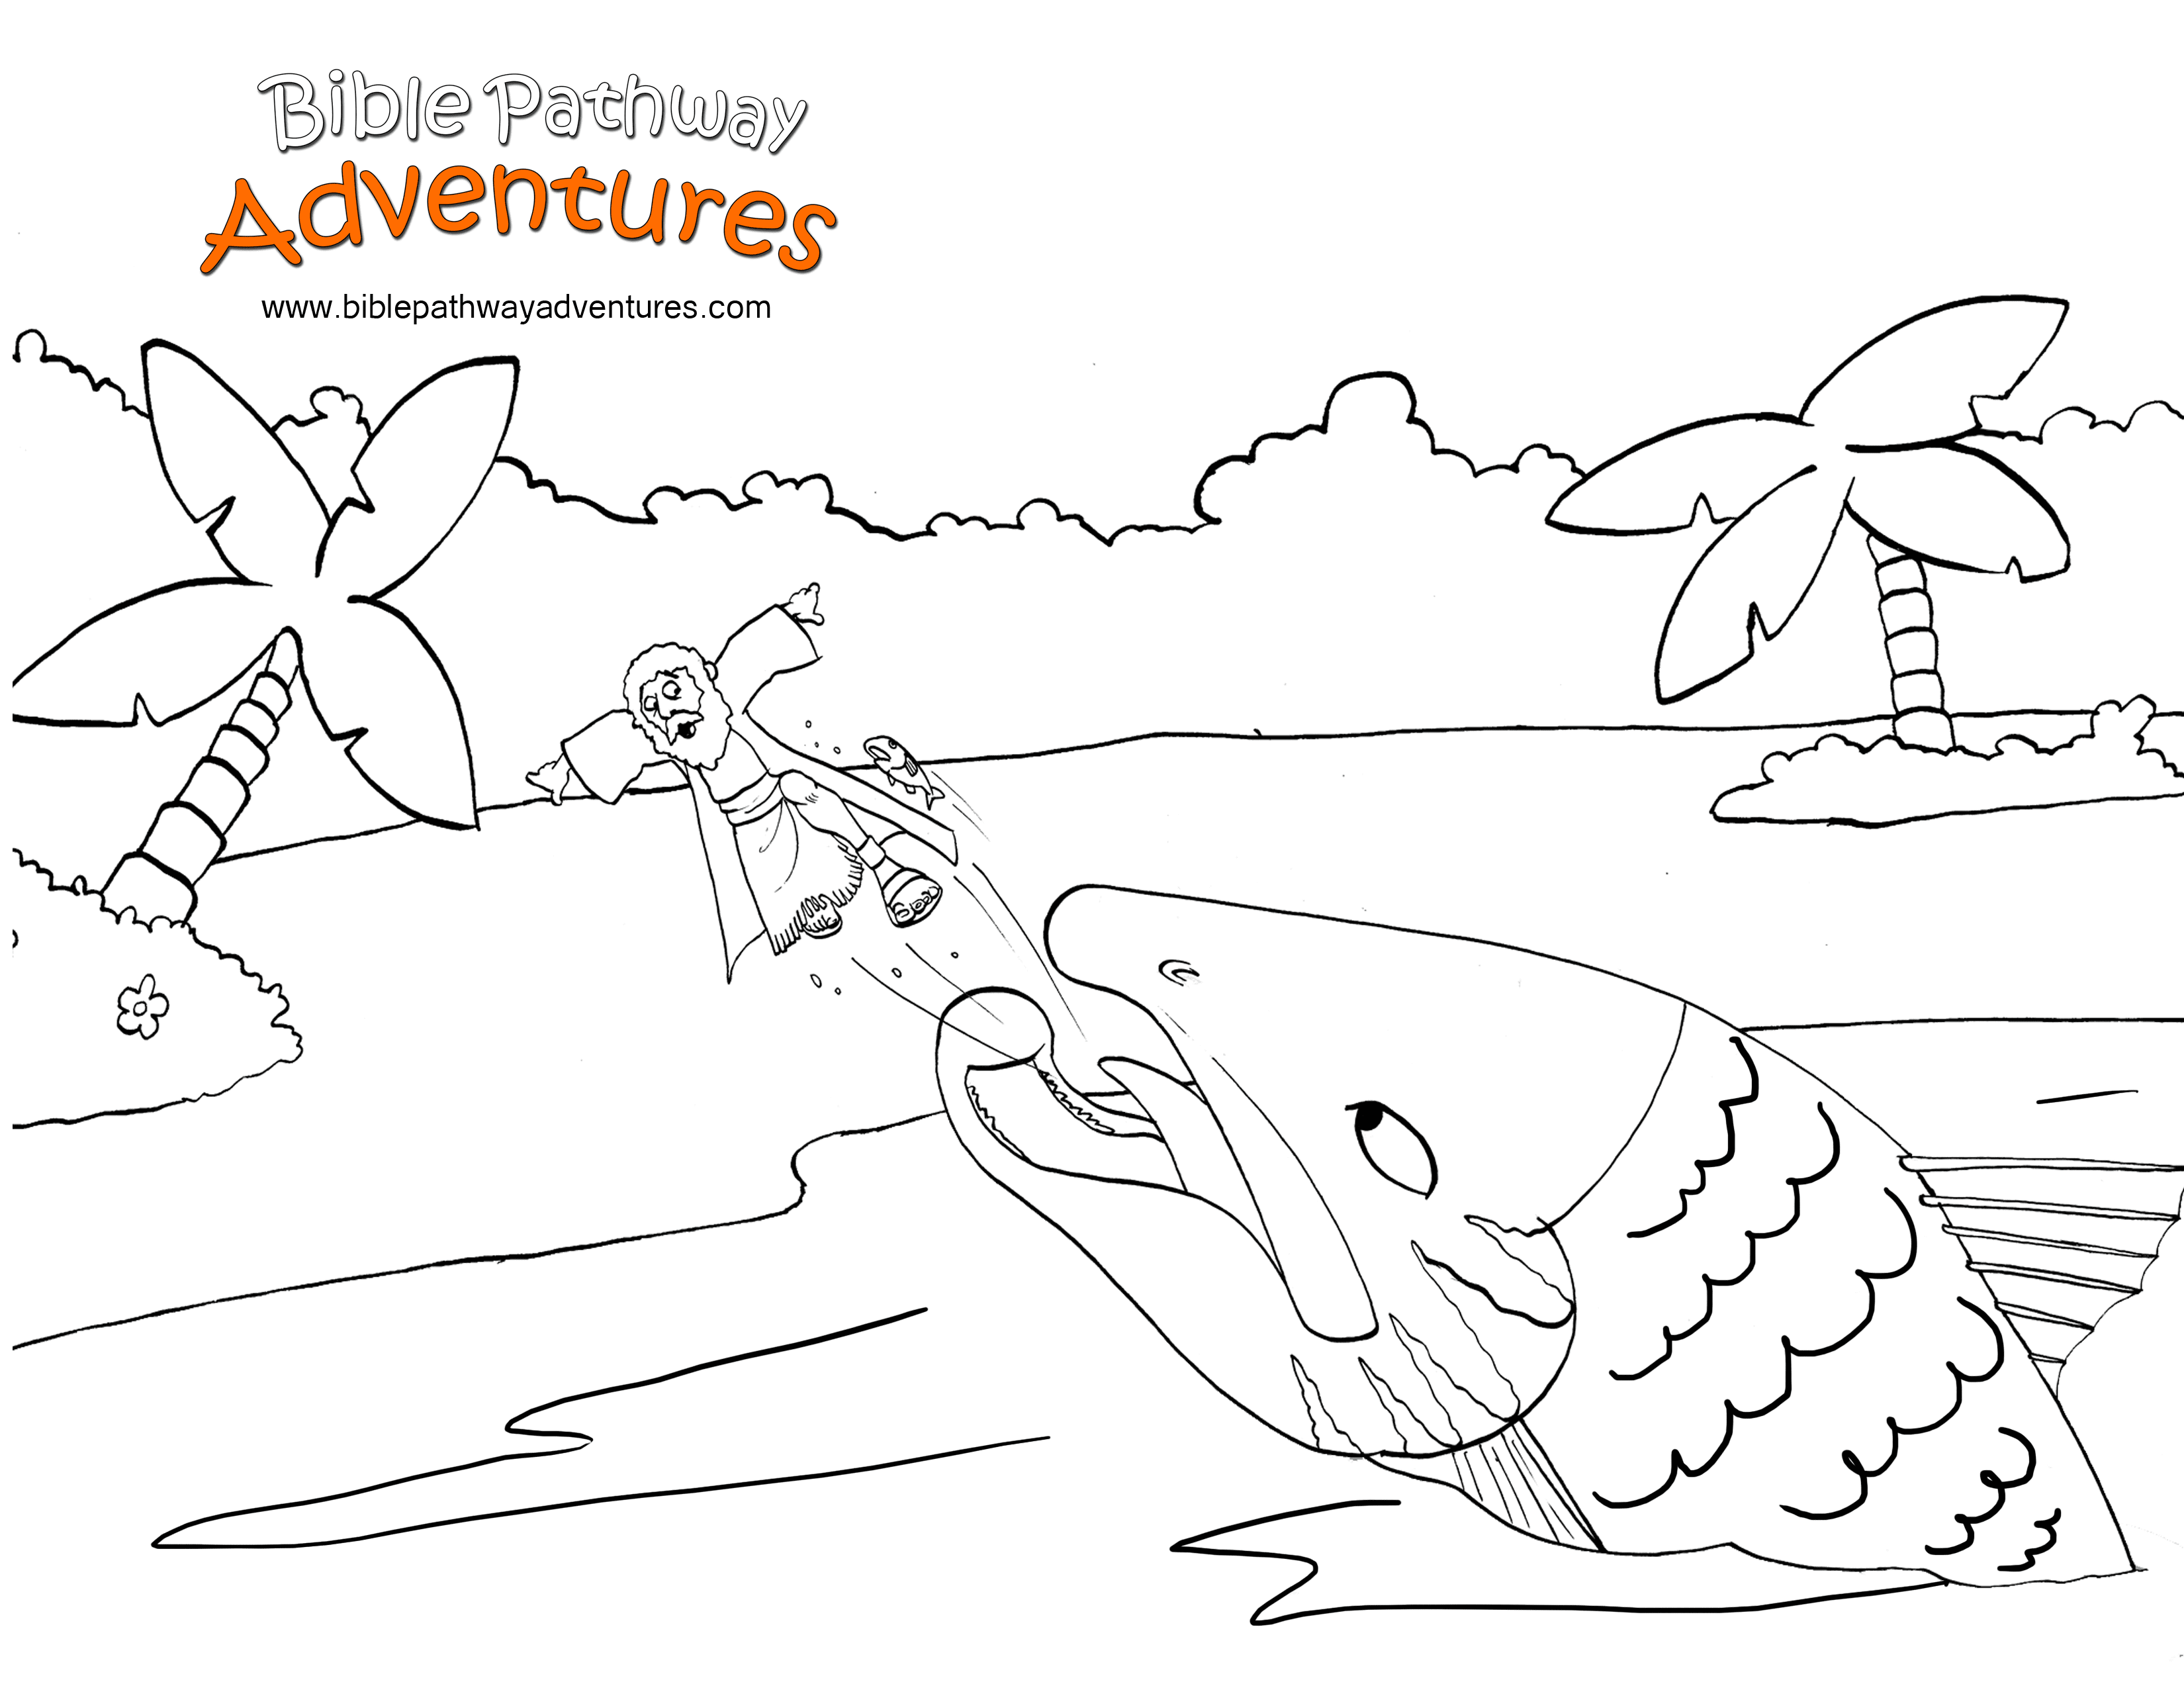 jonah coloring sheet free printable jonah and the whale coloring pages connectus coloring sheet jonah